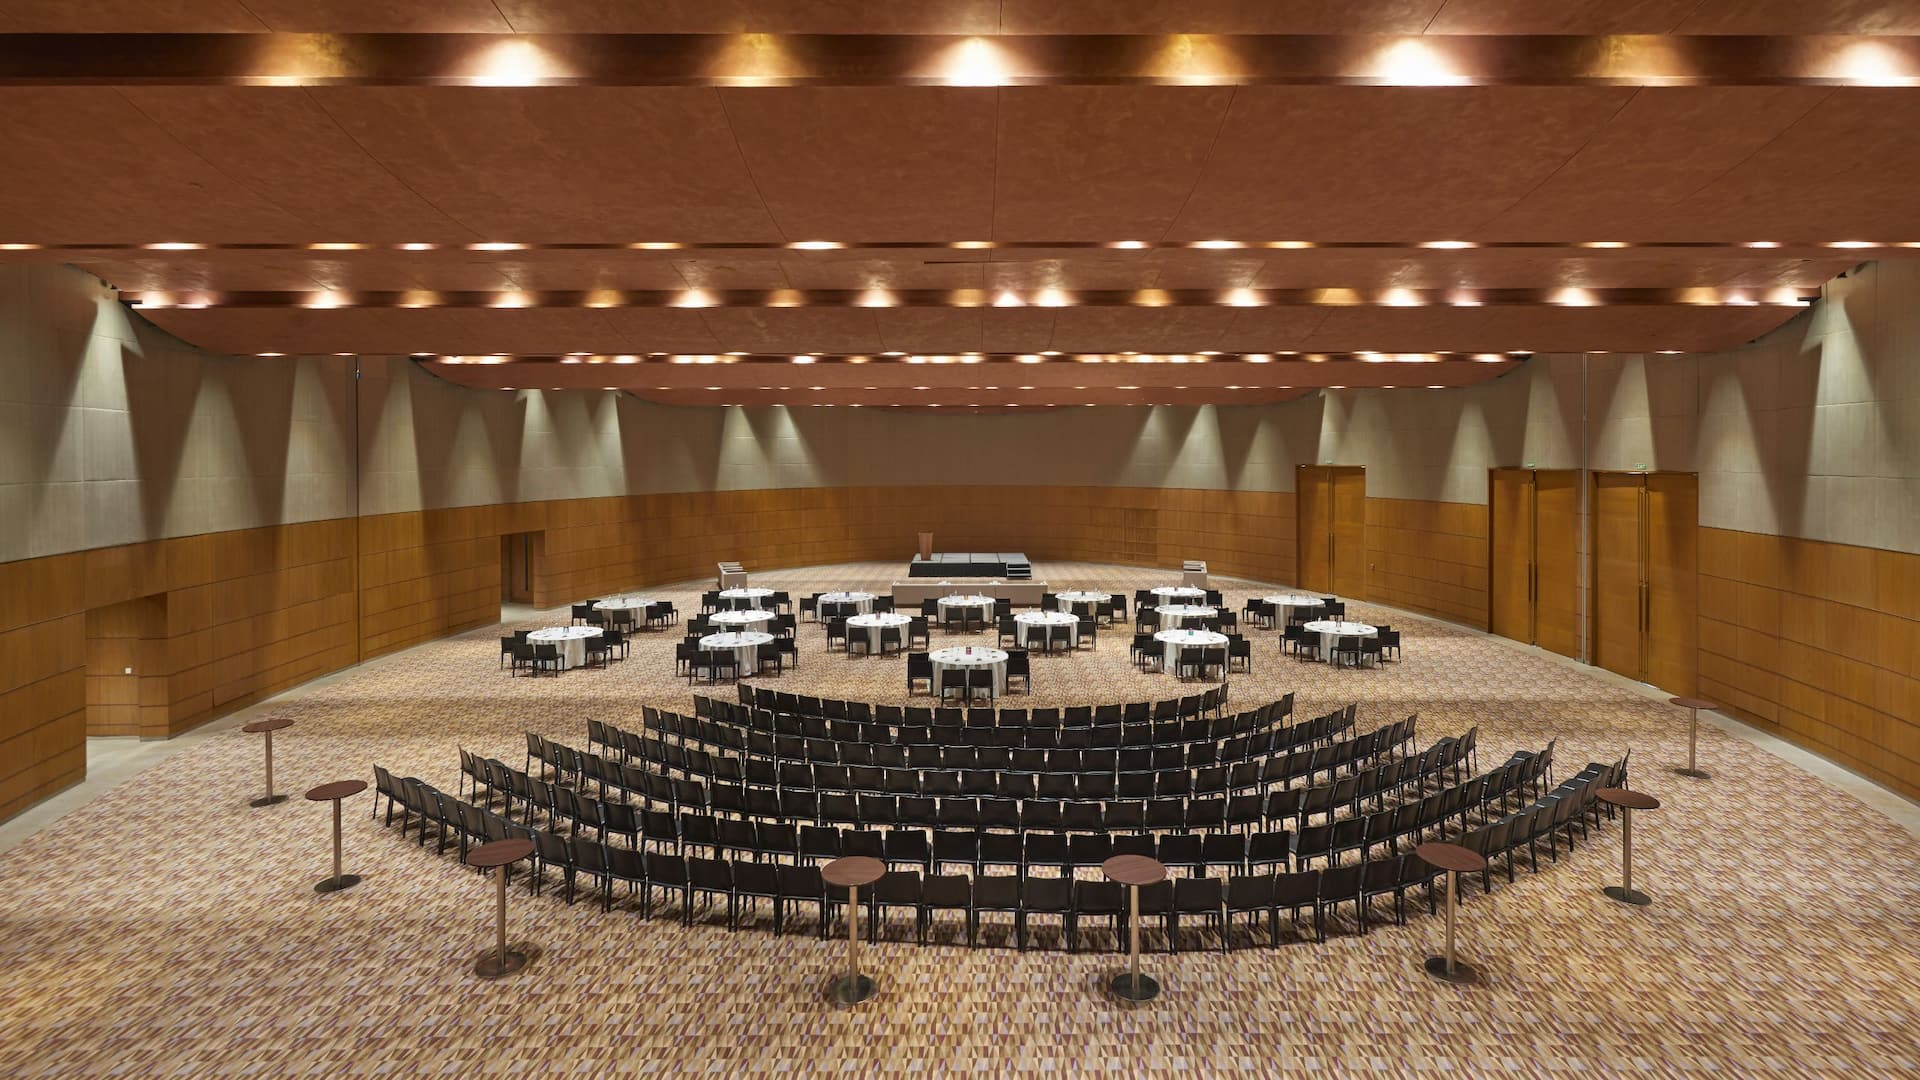 Andaz Delhi Ballroom Arena - Top meetings and event venue in Aerocity Delhi